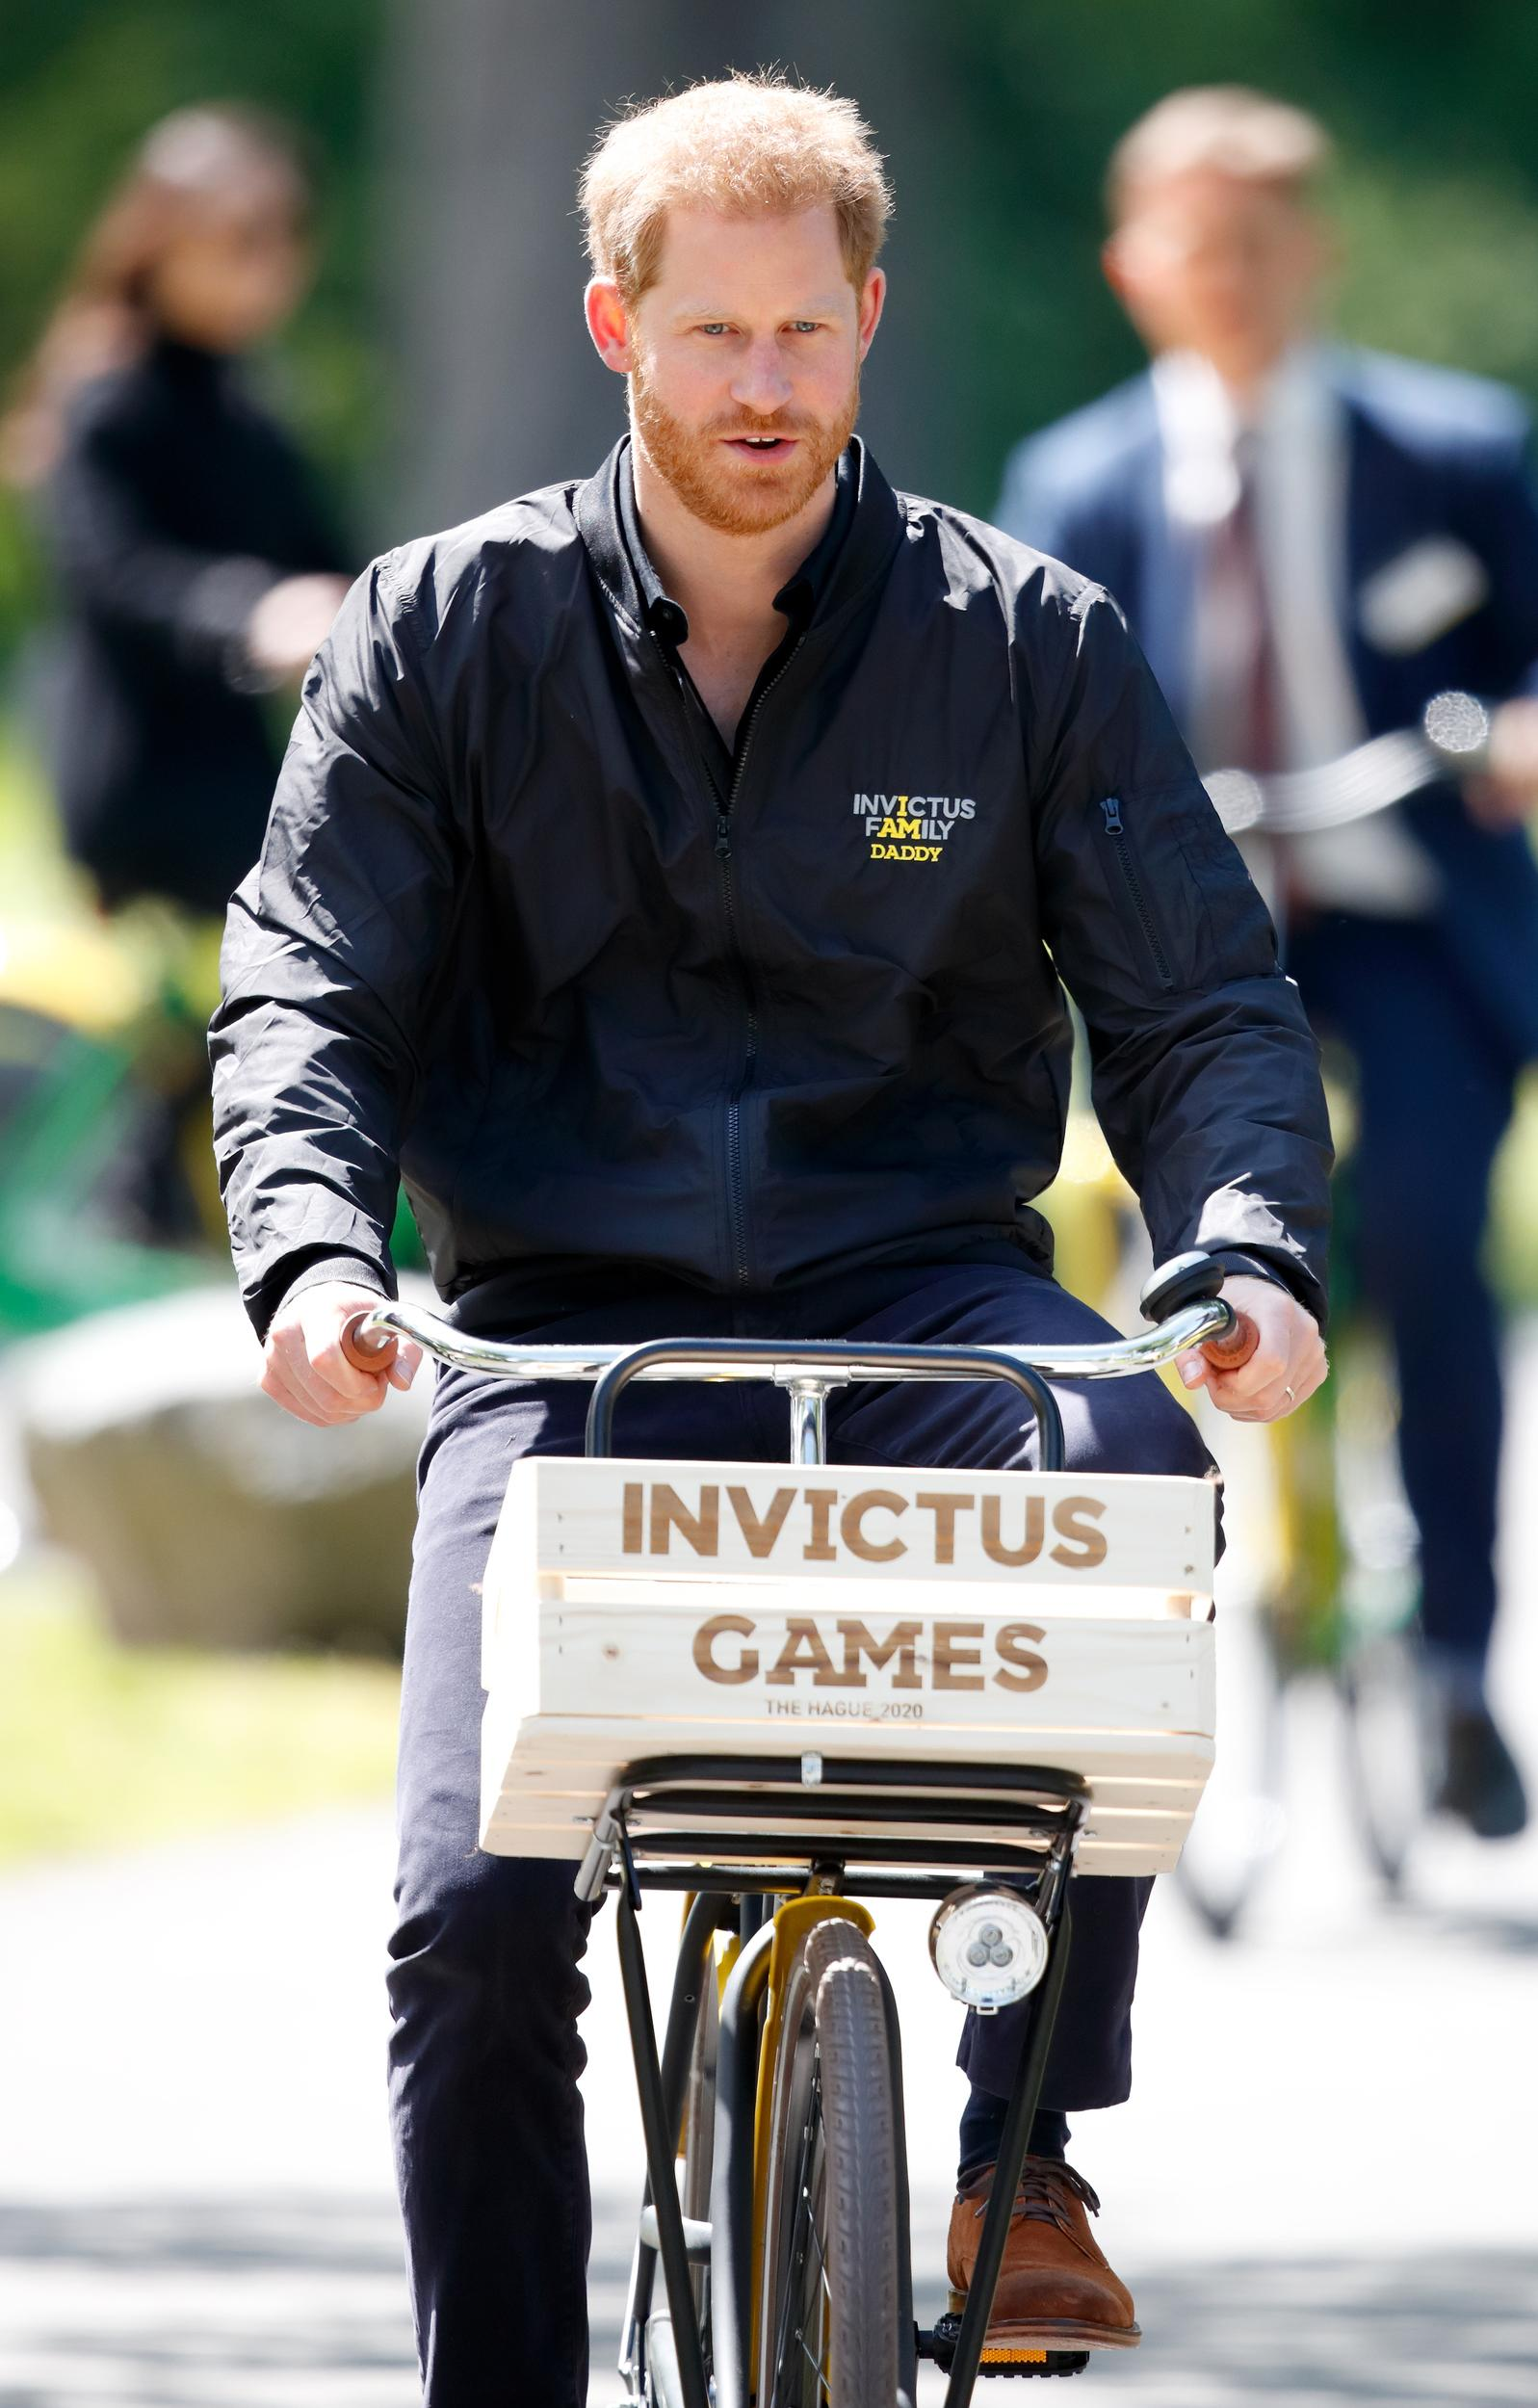 THE HAGUE, NETHERLANDS - MAY 09: (EMBARGOED FOR PUBLICATION IN UK NEWSPAPERS UNTIL 24 HOURS AFTER CREATE DATE AND TIME) Prince Harry, Duke of Sussex rides a bicycle around Sportcampus Zuiderpark as part of a programme of events to mark the official launch of the Invictus Games The Hague 2020 on May 9, 2019 in The Hague, Netherlands. (Photo by Max Mumby/Indigo/Getty Images)